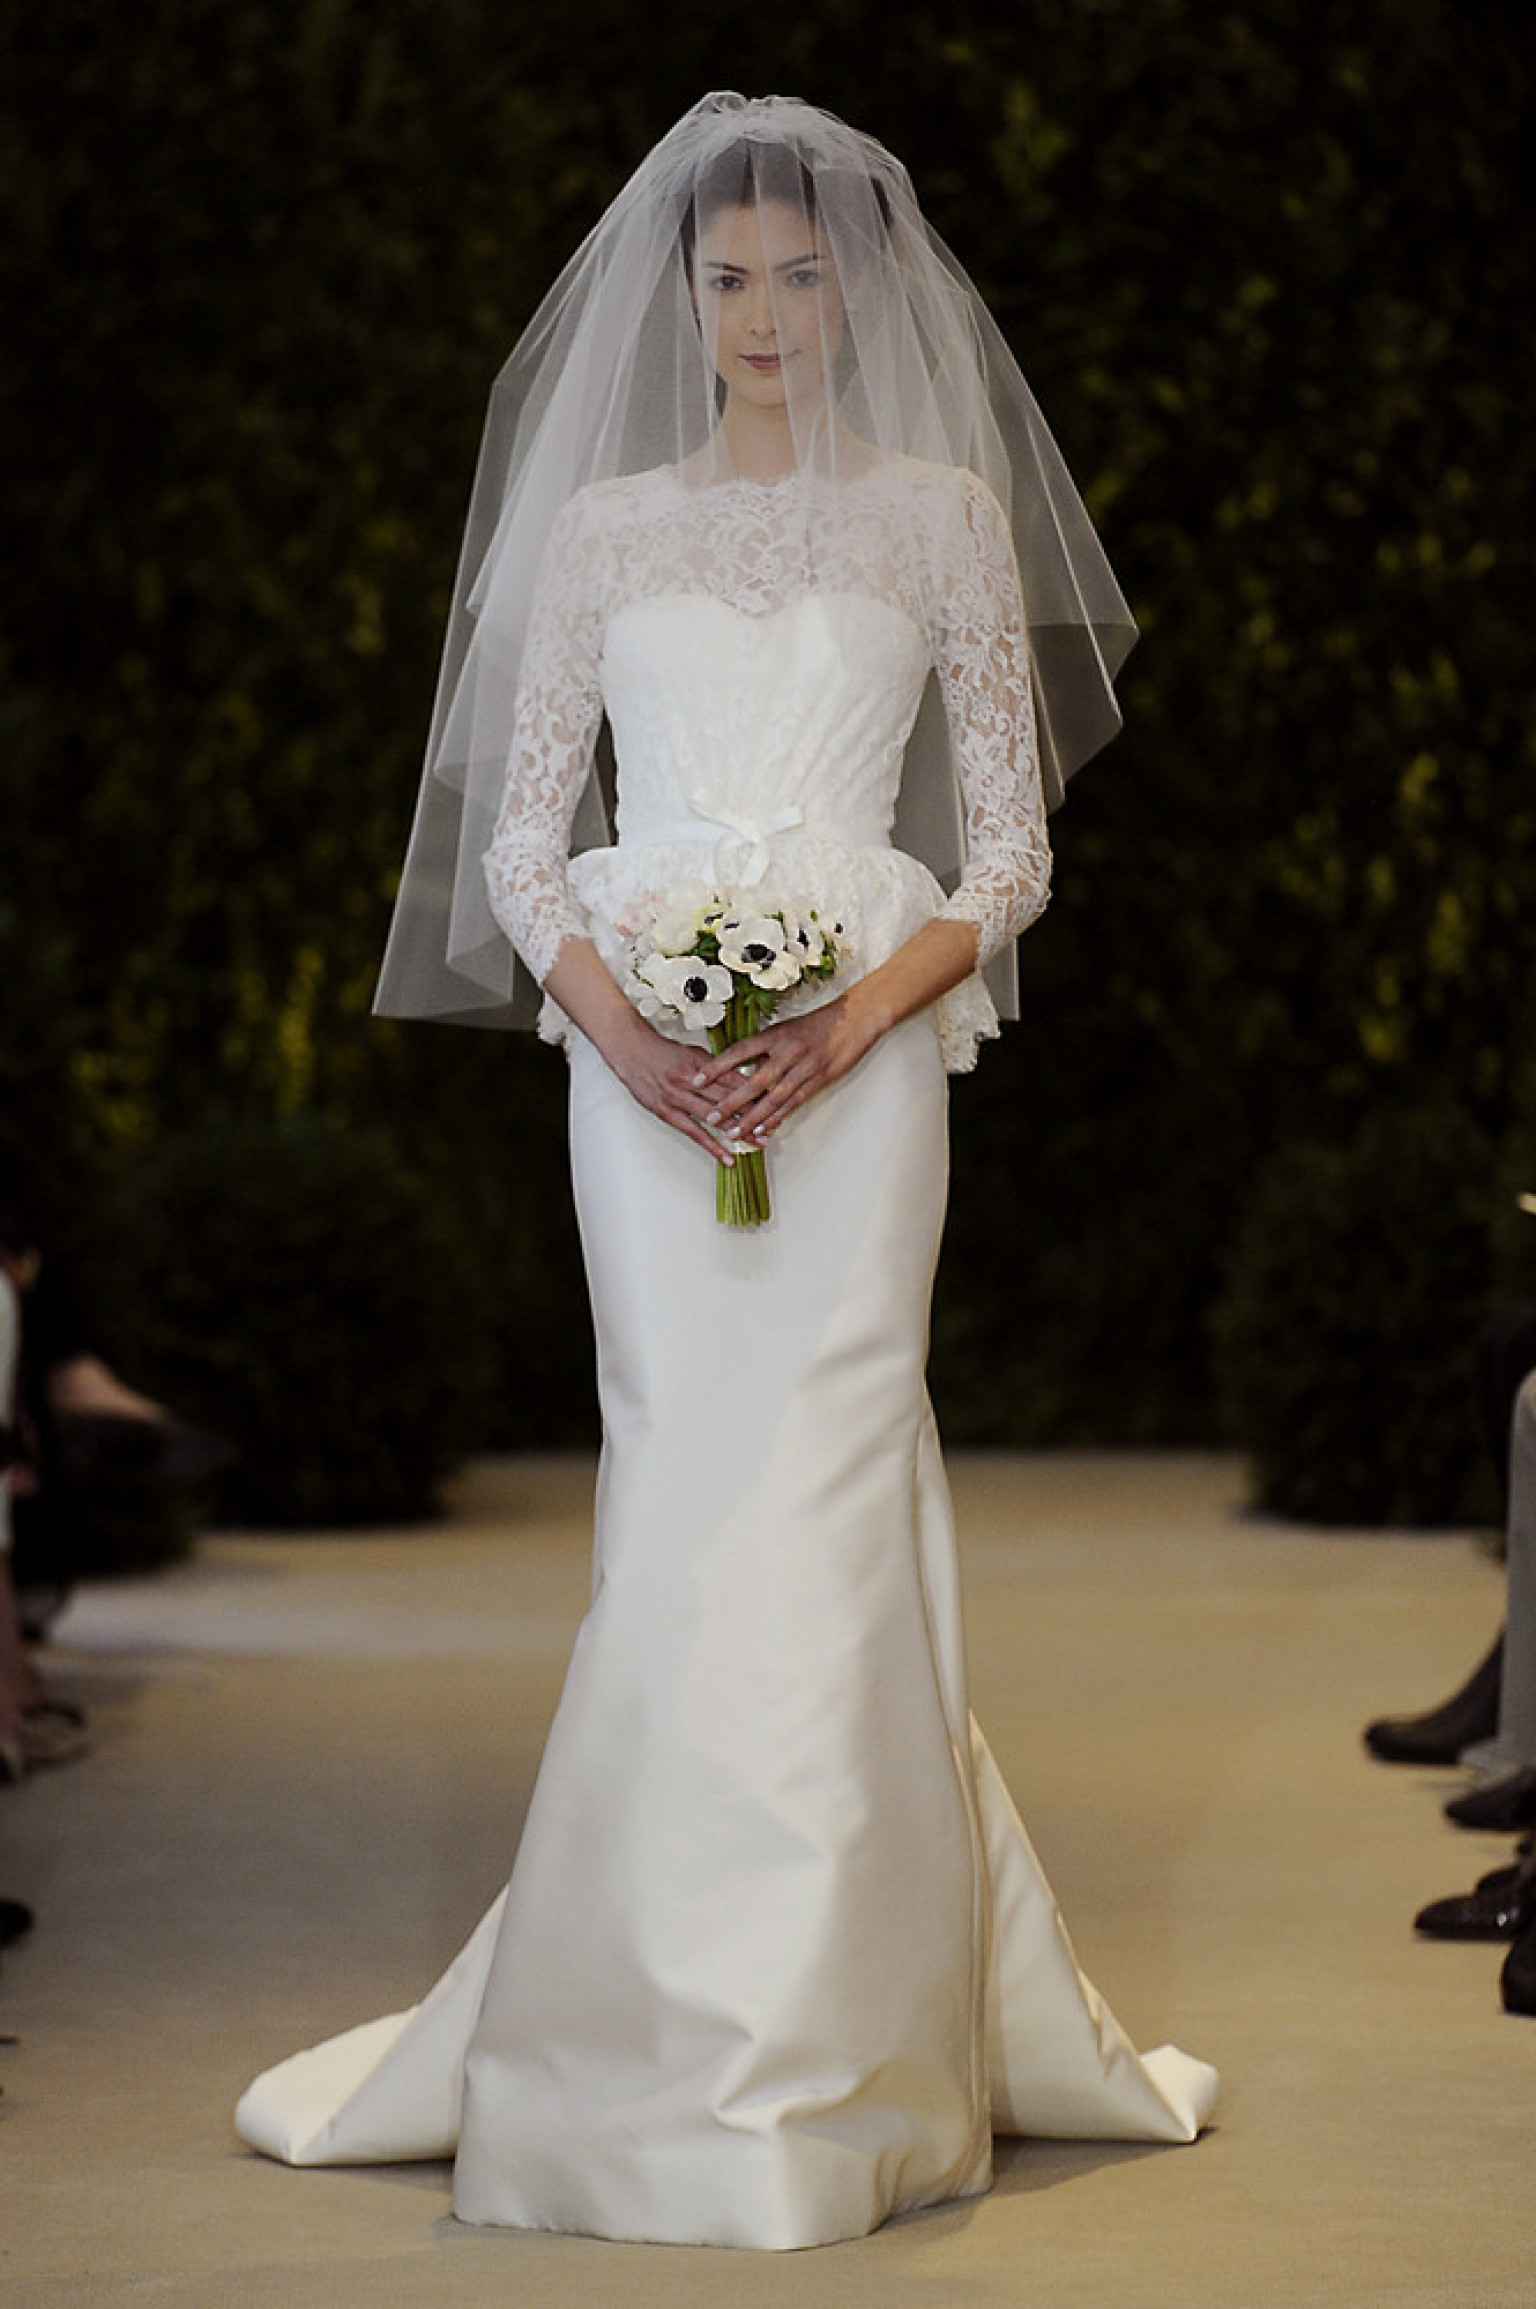 fall wedding dresses n fall dresses for wedding Fall Wedding Dresses Our Picks For The Best Autumn Gowns PHOTOS HuffPost